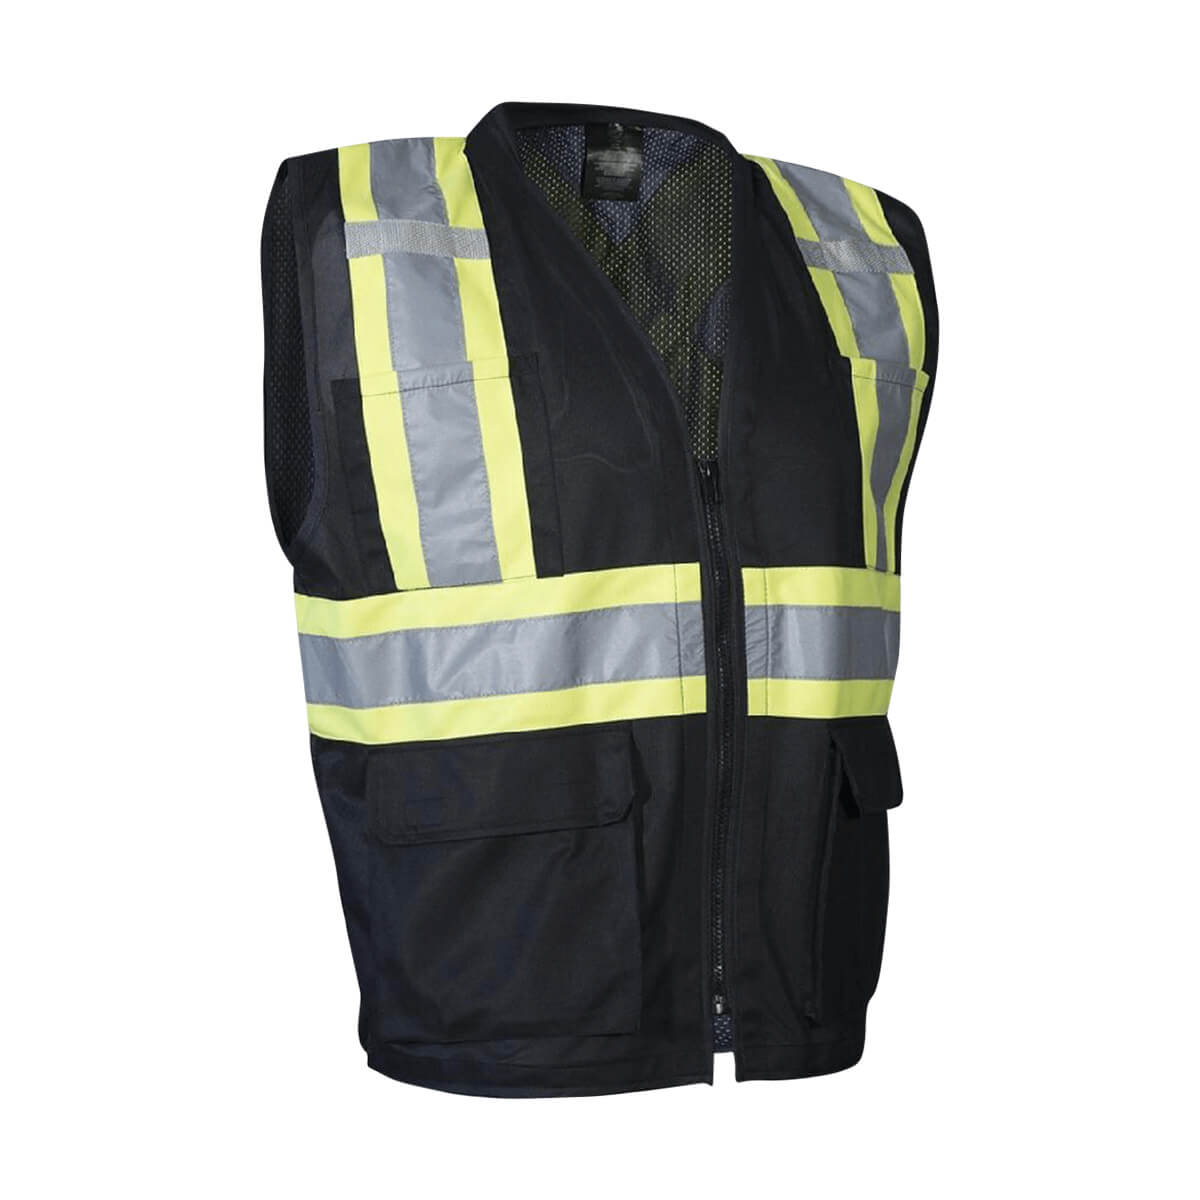 Forcefield Hi Vis Safety Vest with Front Zipper